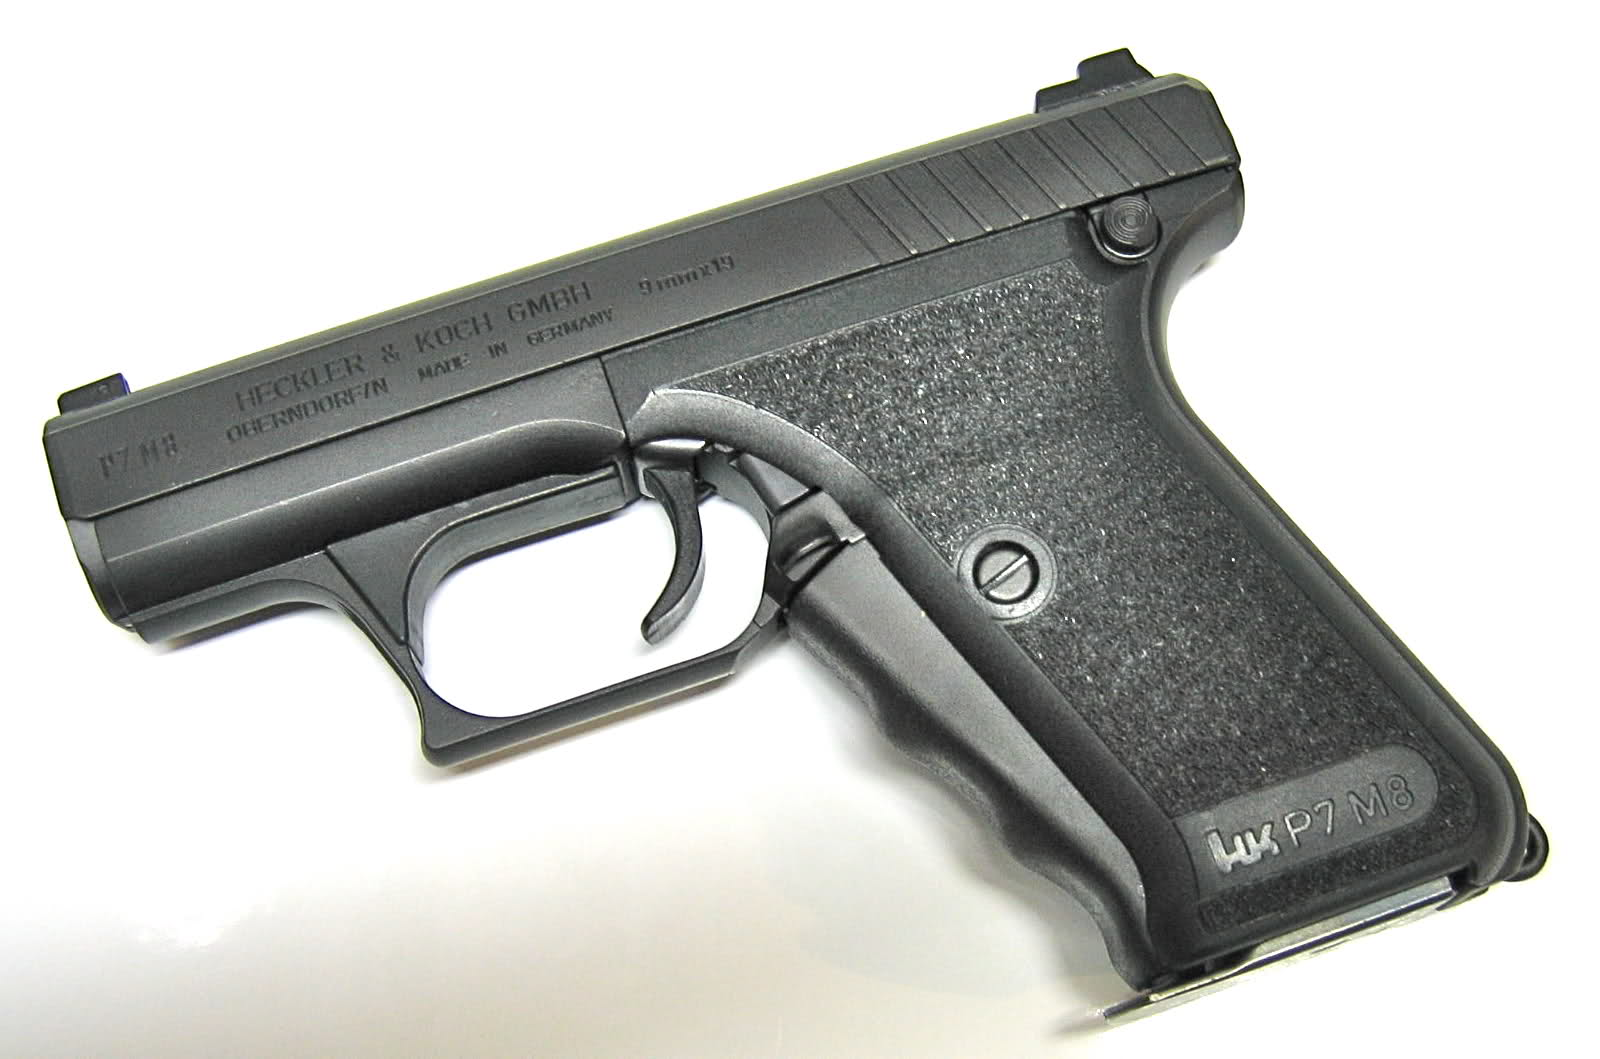 HK P7M8 cal 9x19mm SOLD OUT